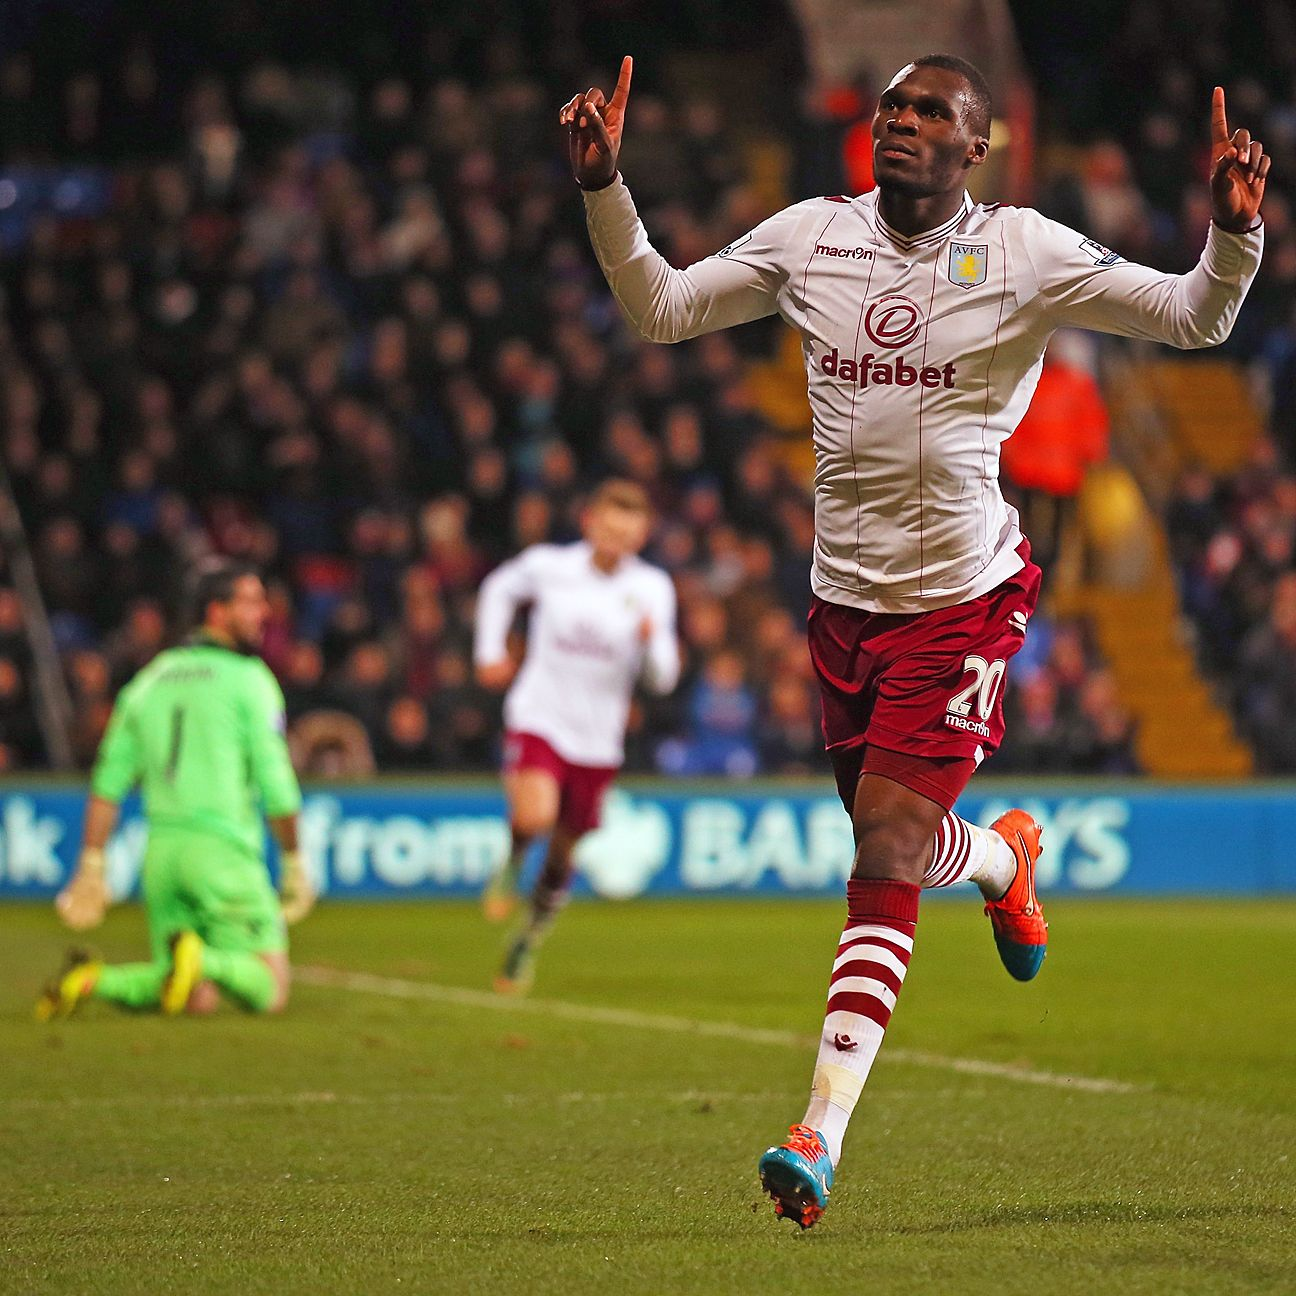 Despite being limited by injuries, Christian Benteke still finished with 13 goals in 2014-15.